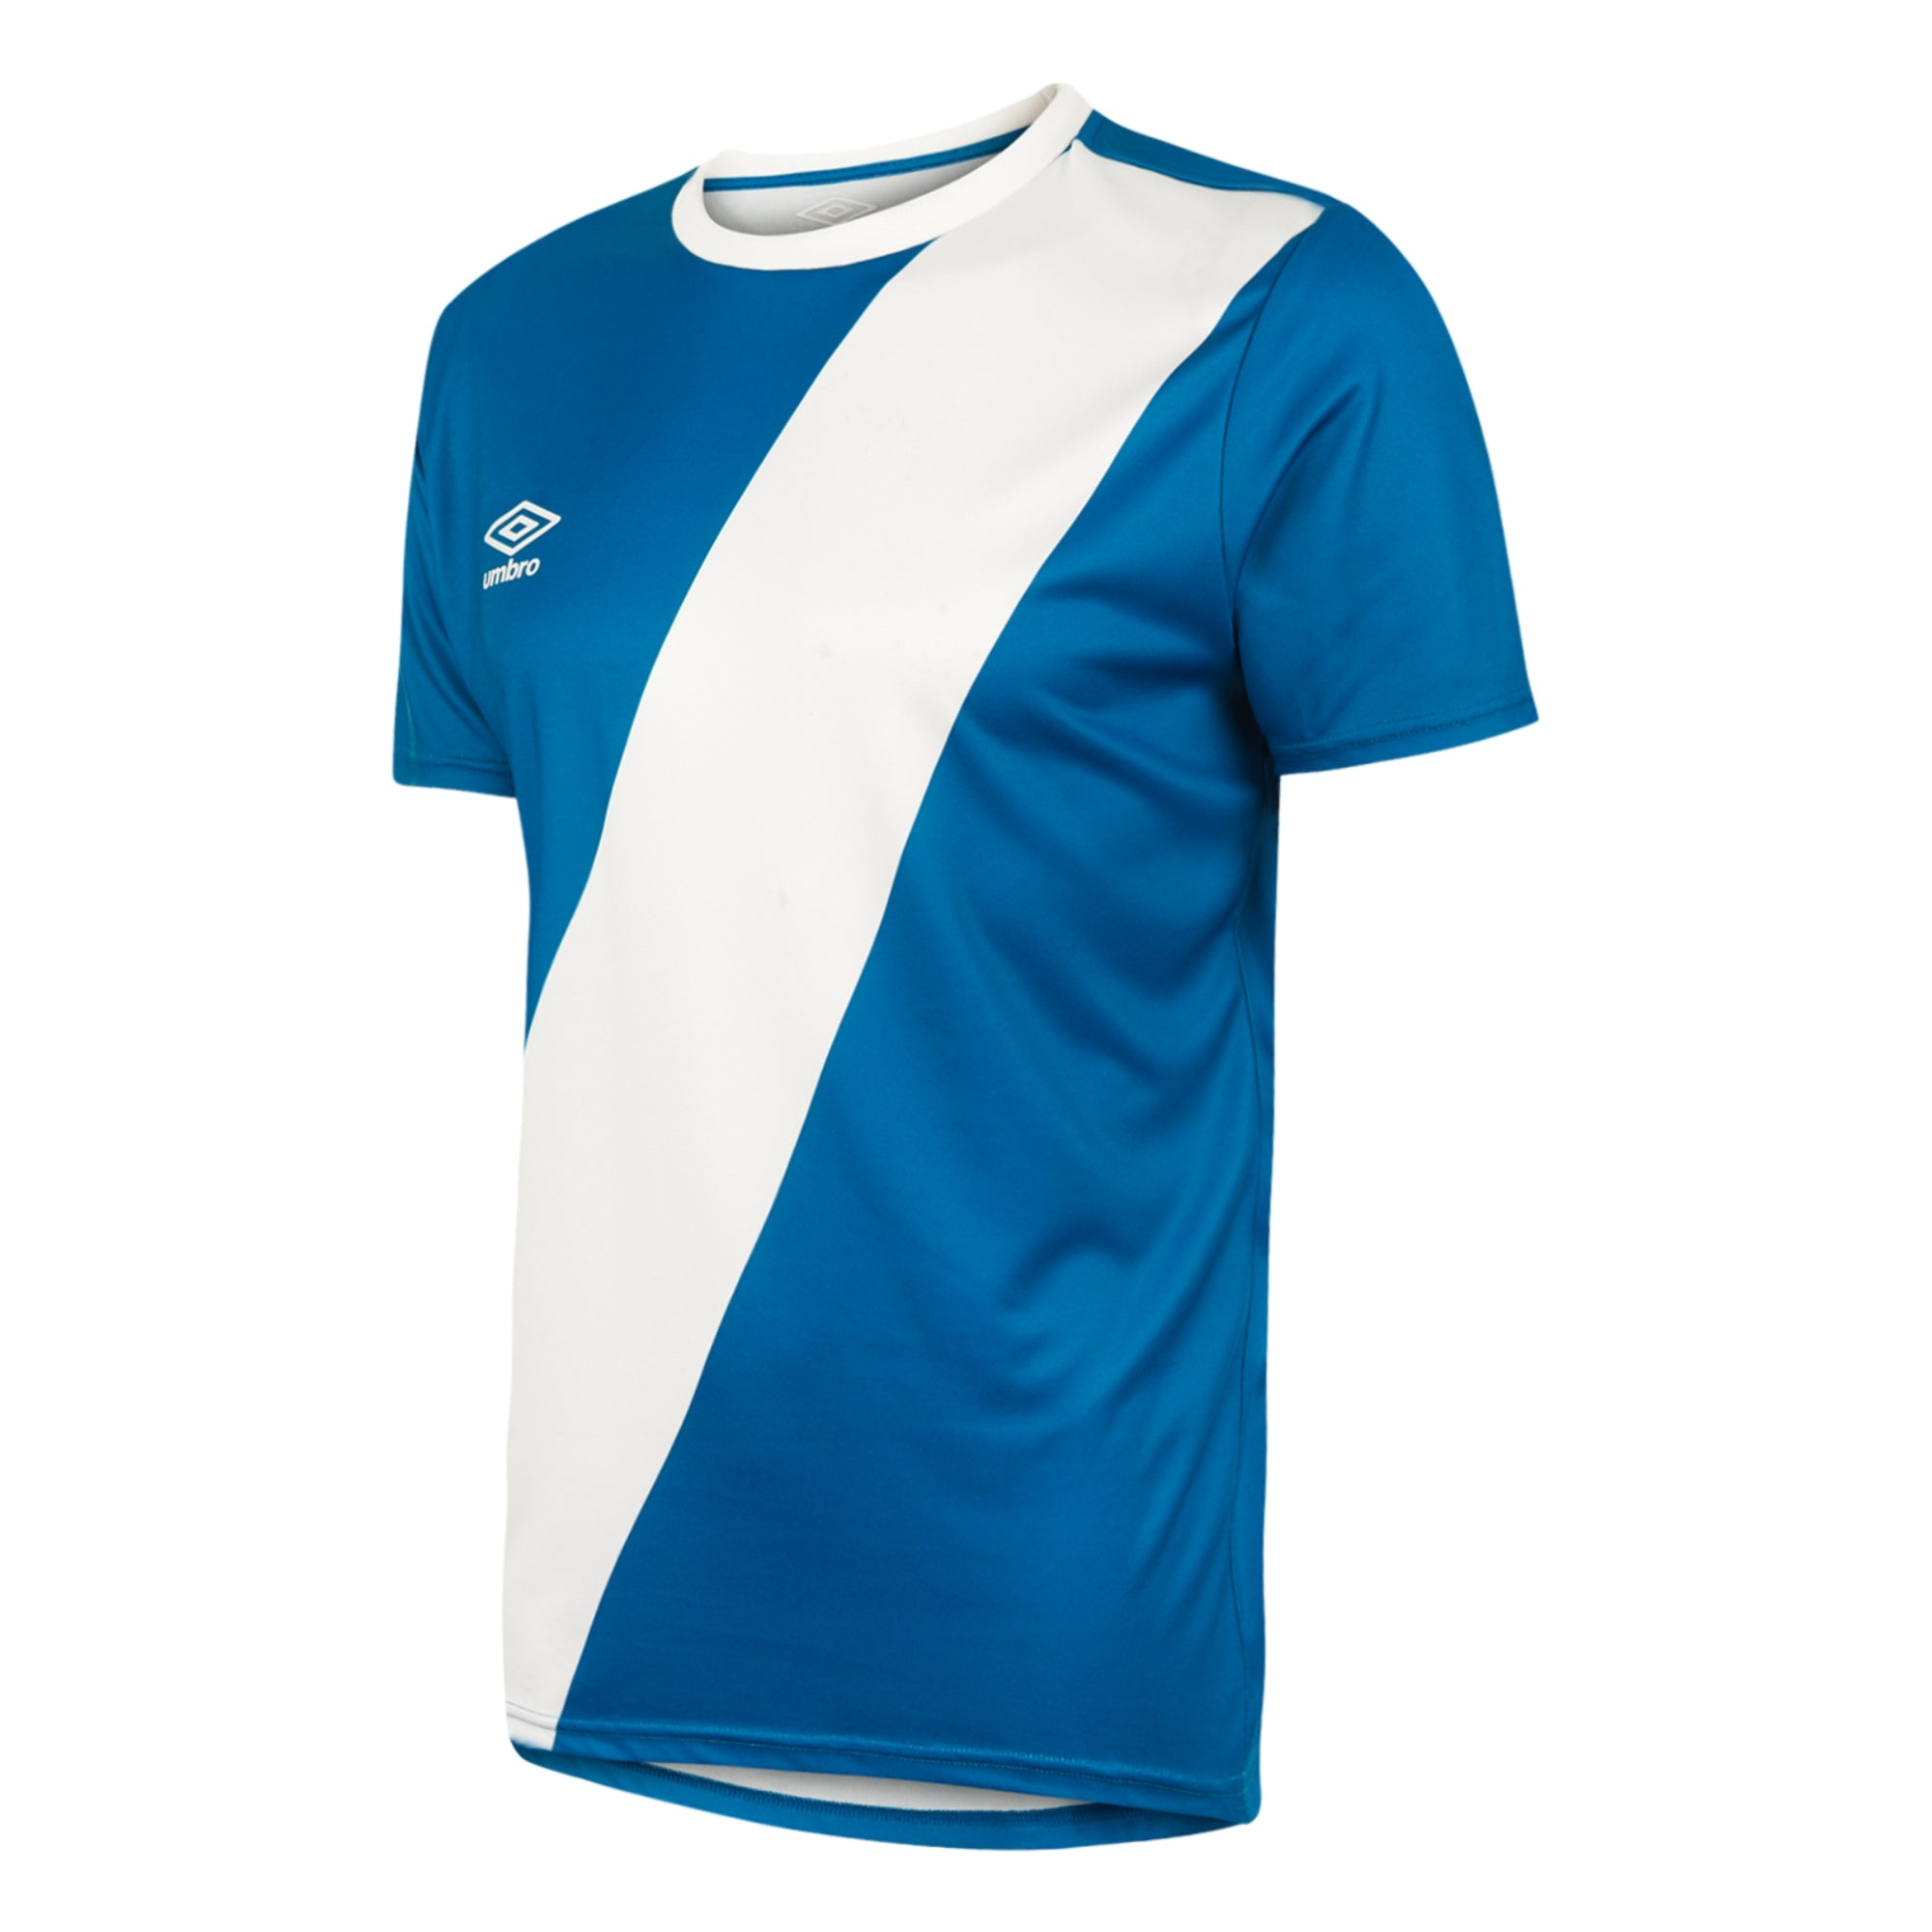 Umbro Nazca Jersey SS - Royal/White